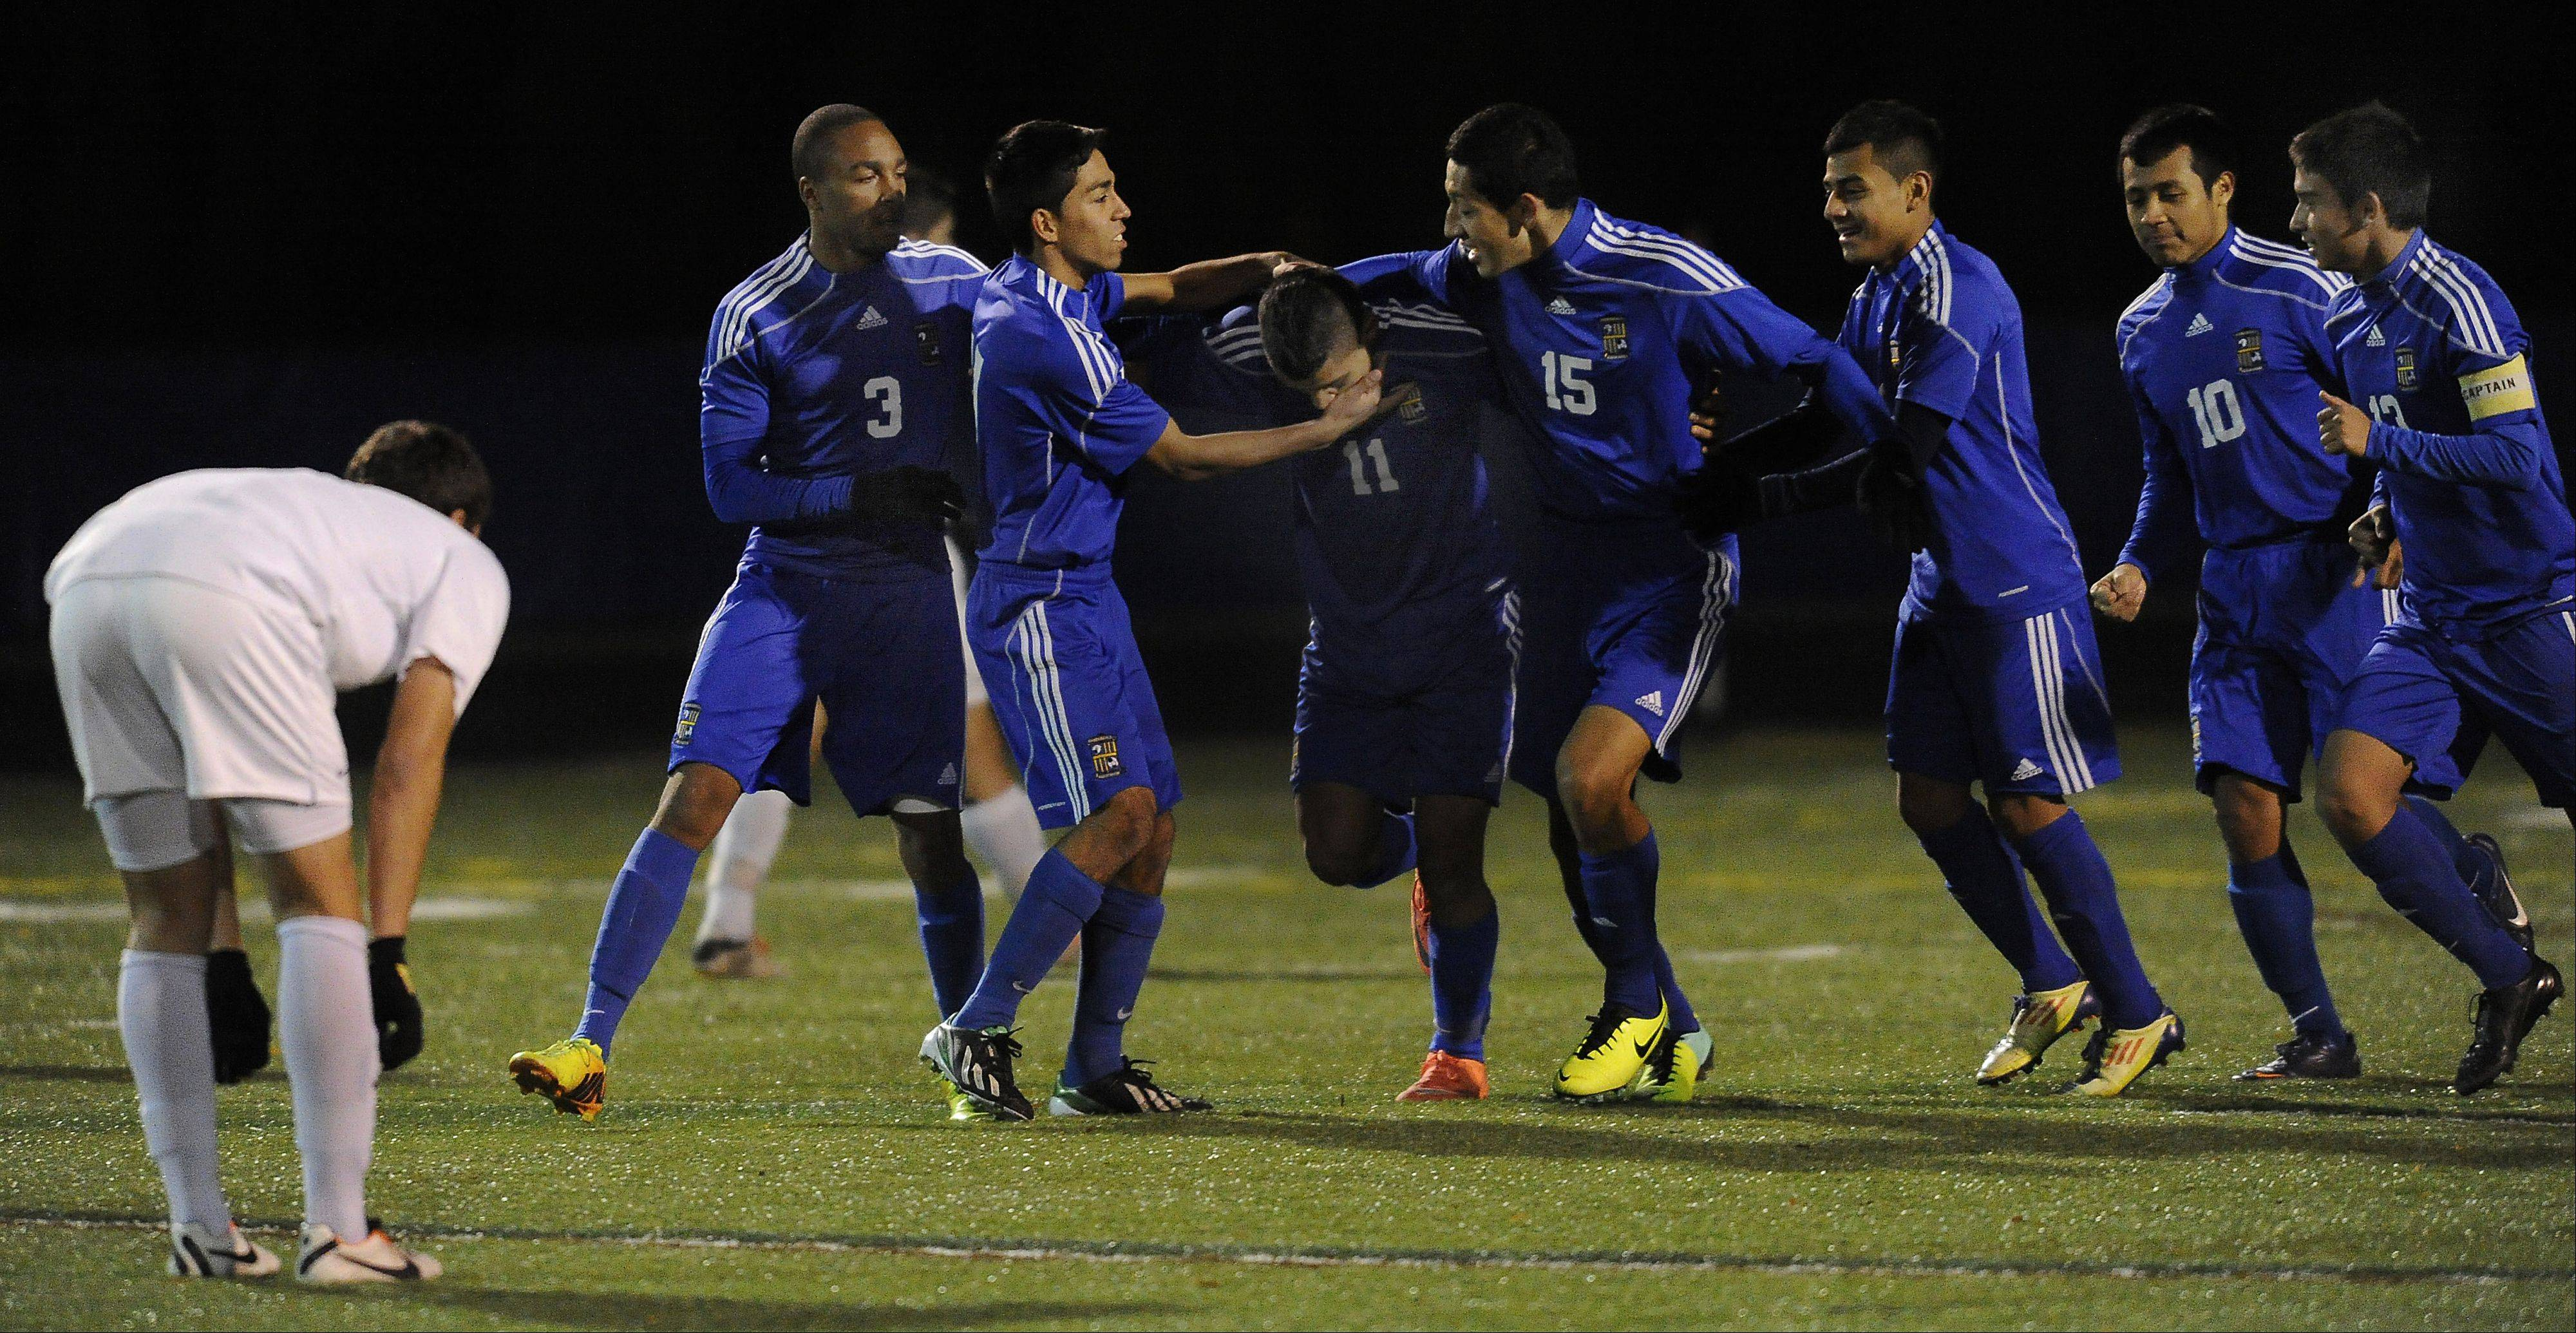 Wheeling's Luis Herrera is mobbed by teammates after a goal.